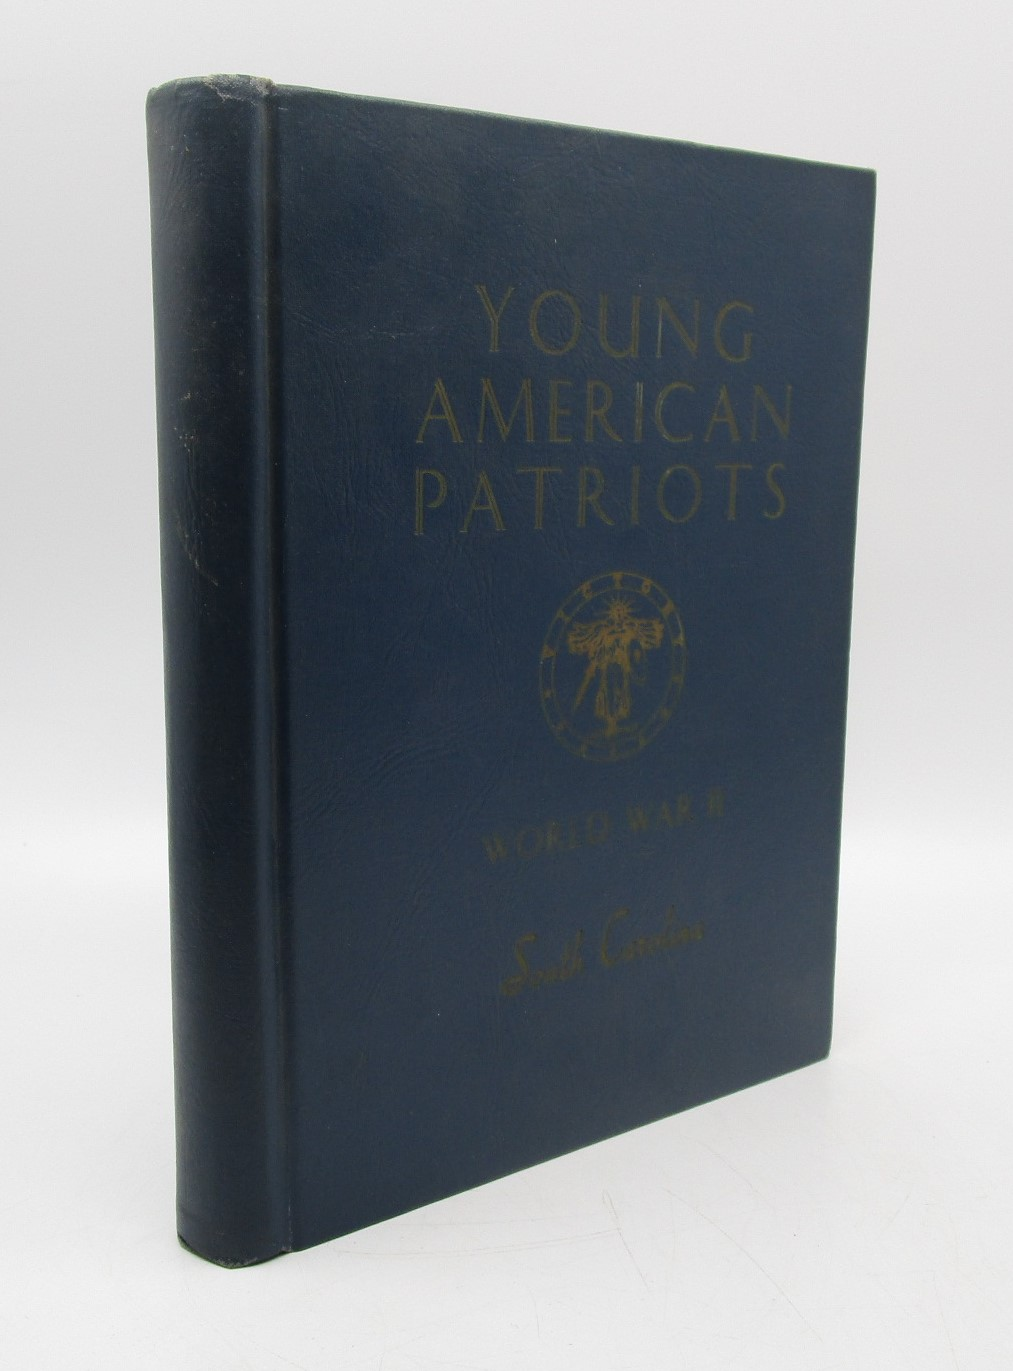 Image for Young American Patriots: The Youth of South Carolina in World War II (Volume II)